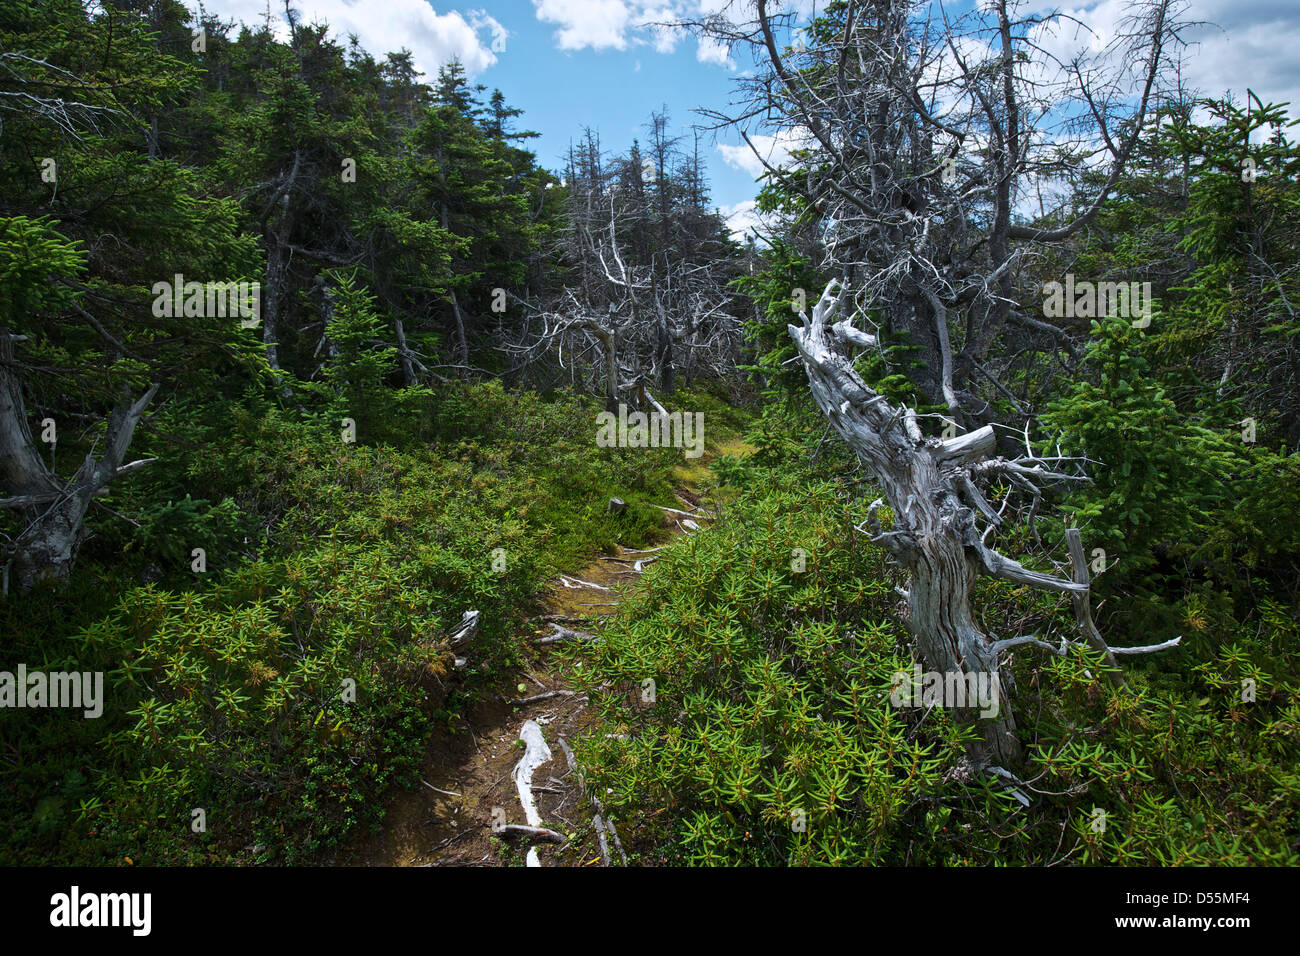 Along one of the Old Trails of Salvage, Eastport Peninsula, Bonavista Bay Newfoundland, Canada. - Stock Image